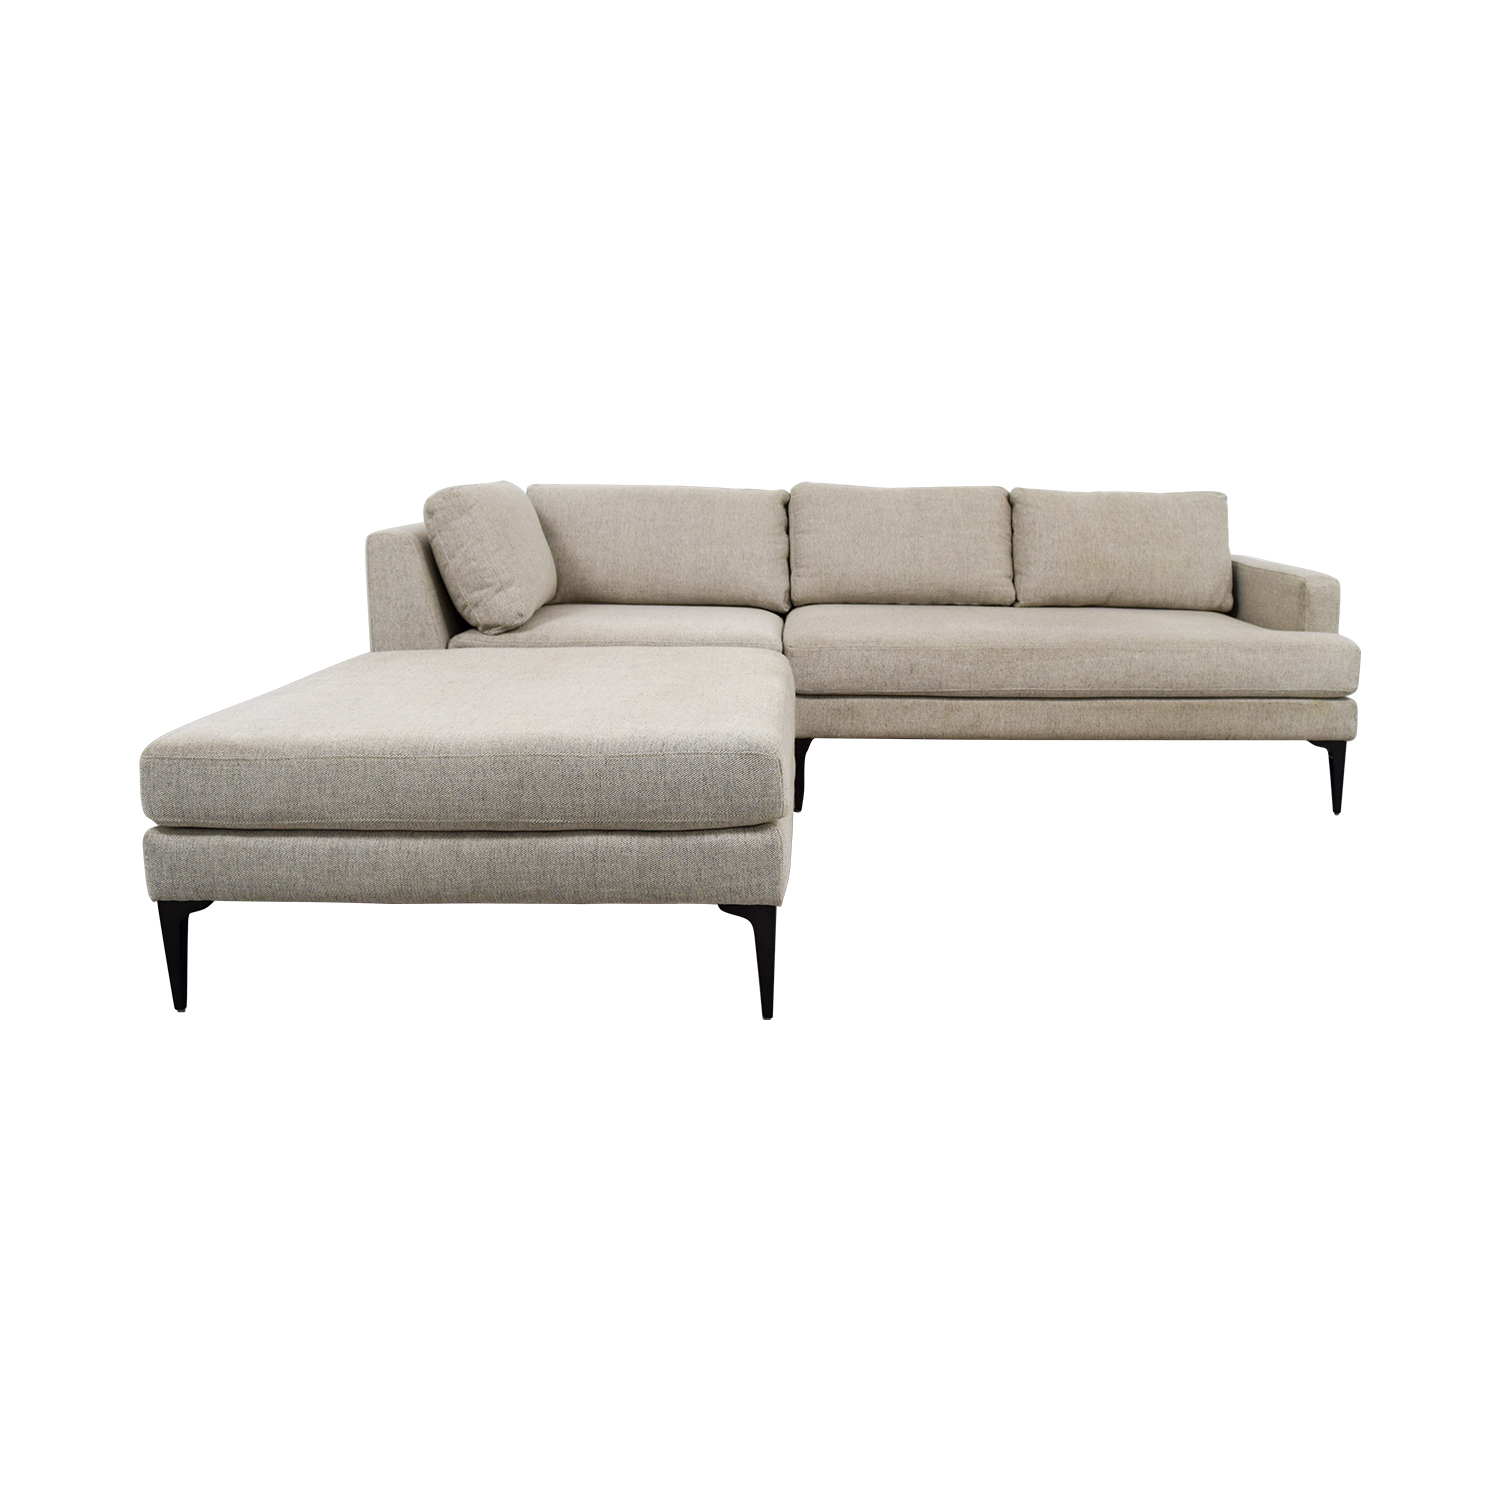 Cool 42 Off West Elm West Elm Andes Terminal Chaise Sectional Couch Sofas Alphanode Cool Chair Designs And Ideas Alphanodeonline